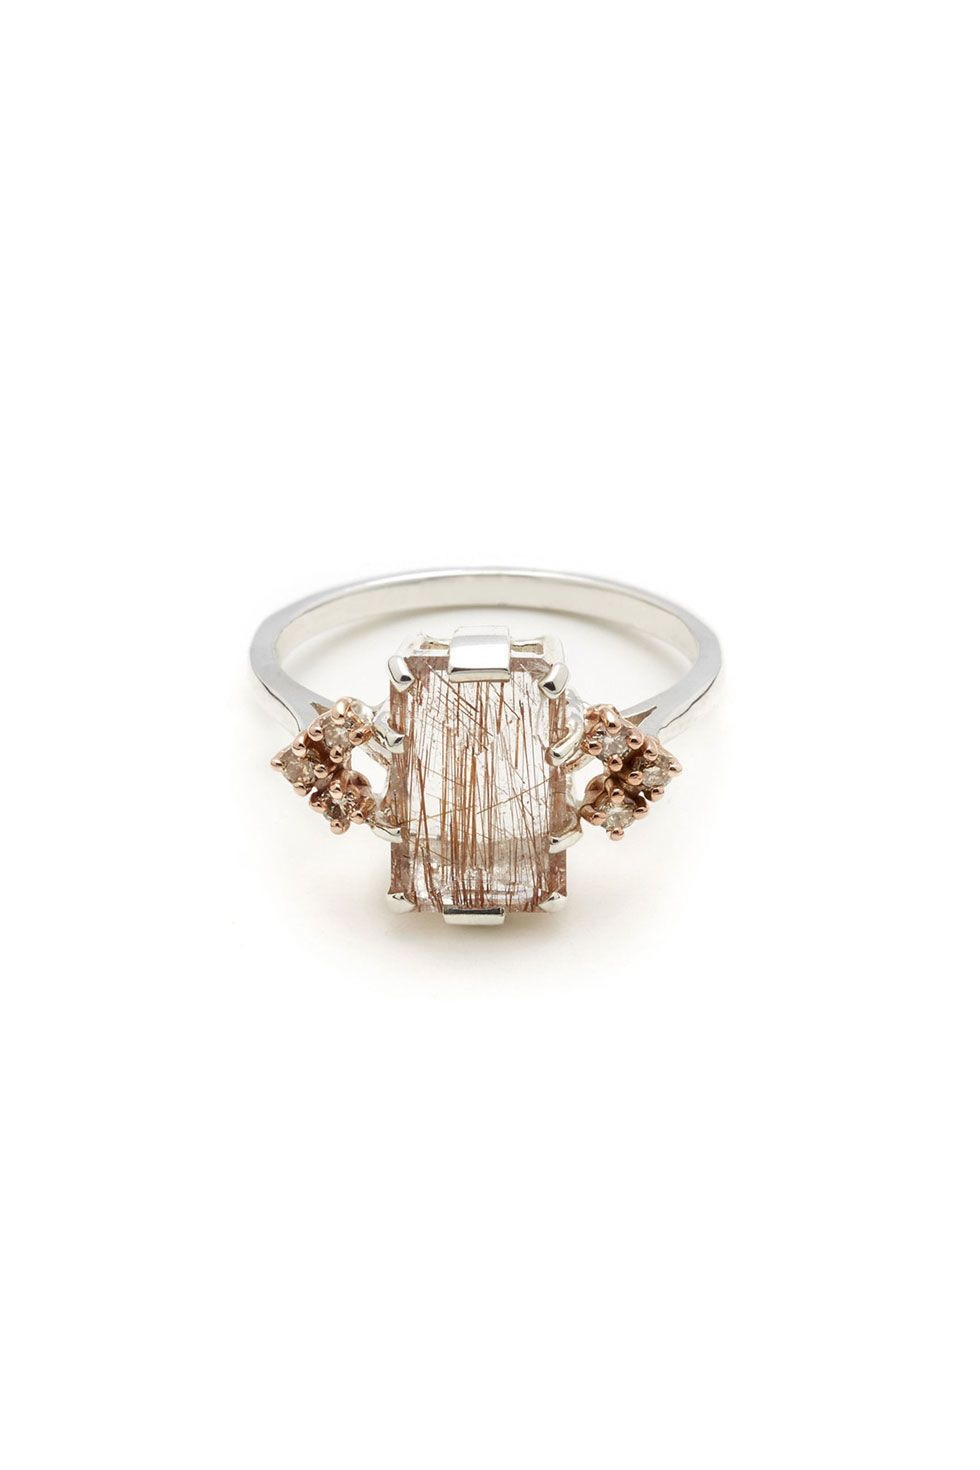 emerald cut diamond engagement products accents gold stone w a upon once white rings ring